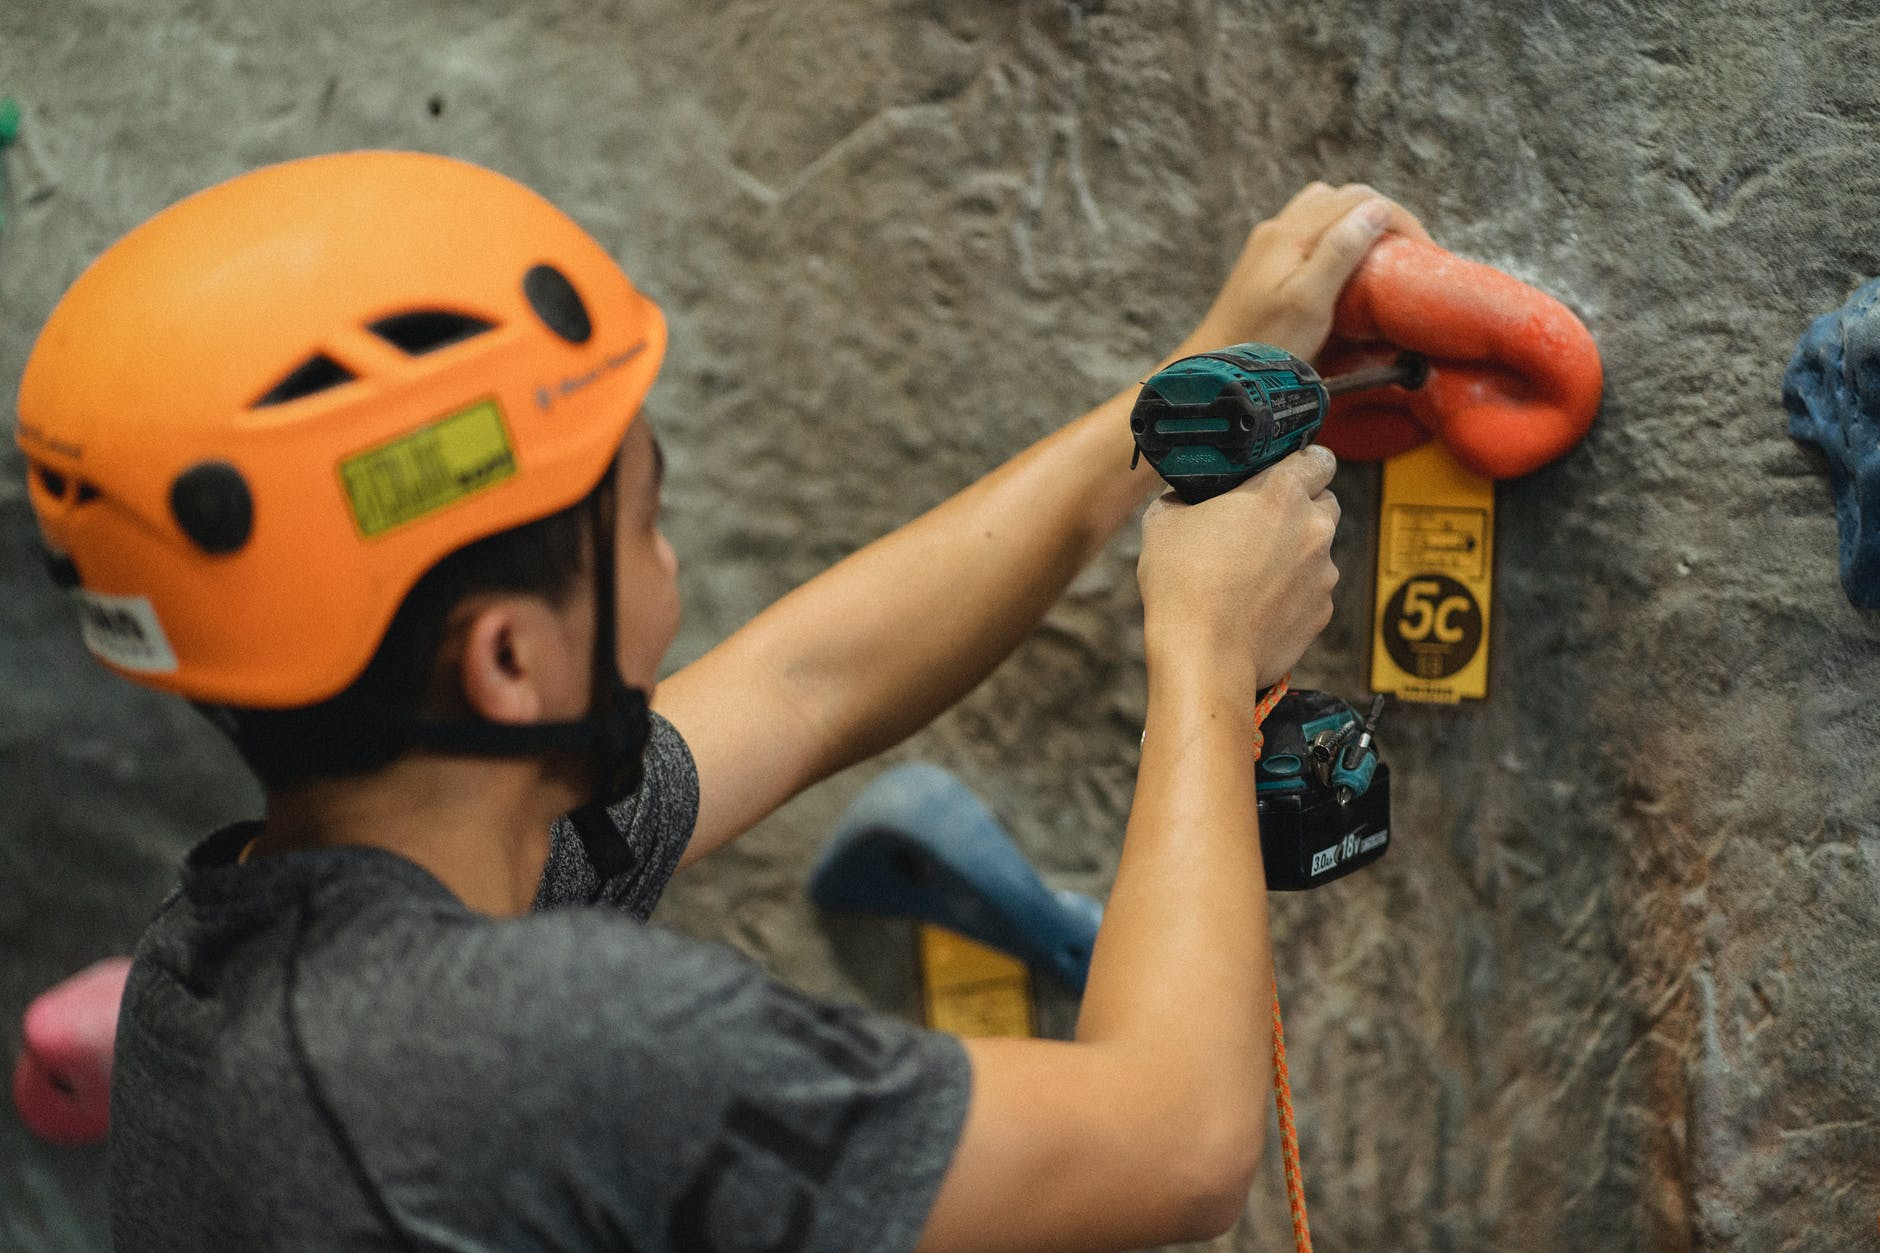 crop athlete fasten climbing hold with screwdriver on wall in gym